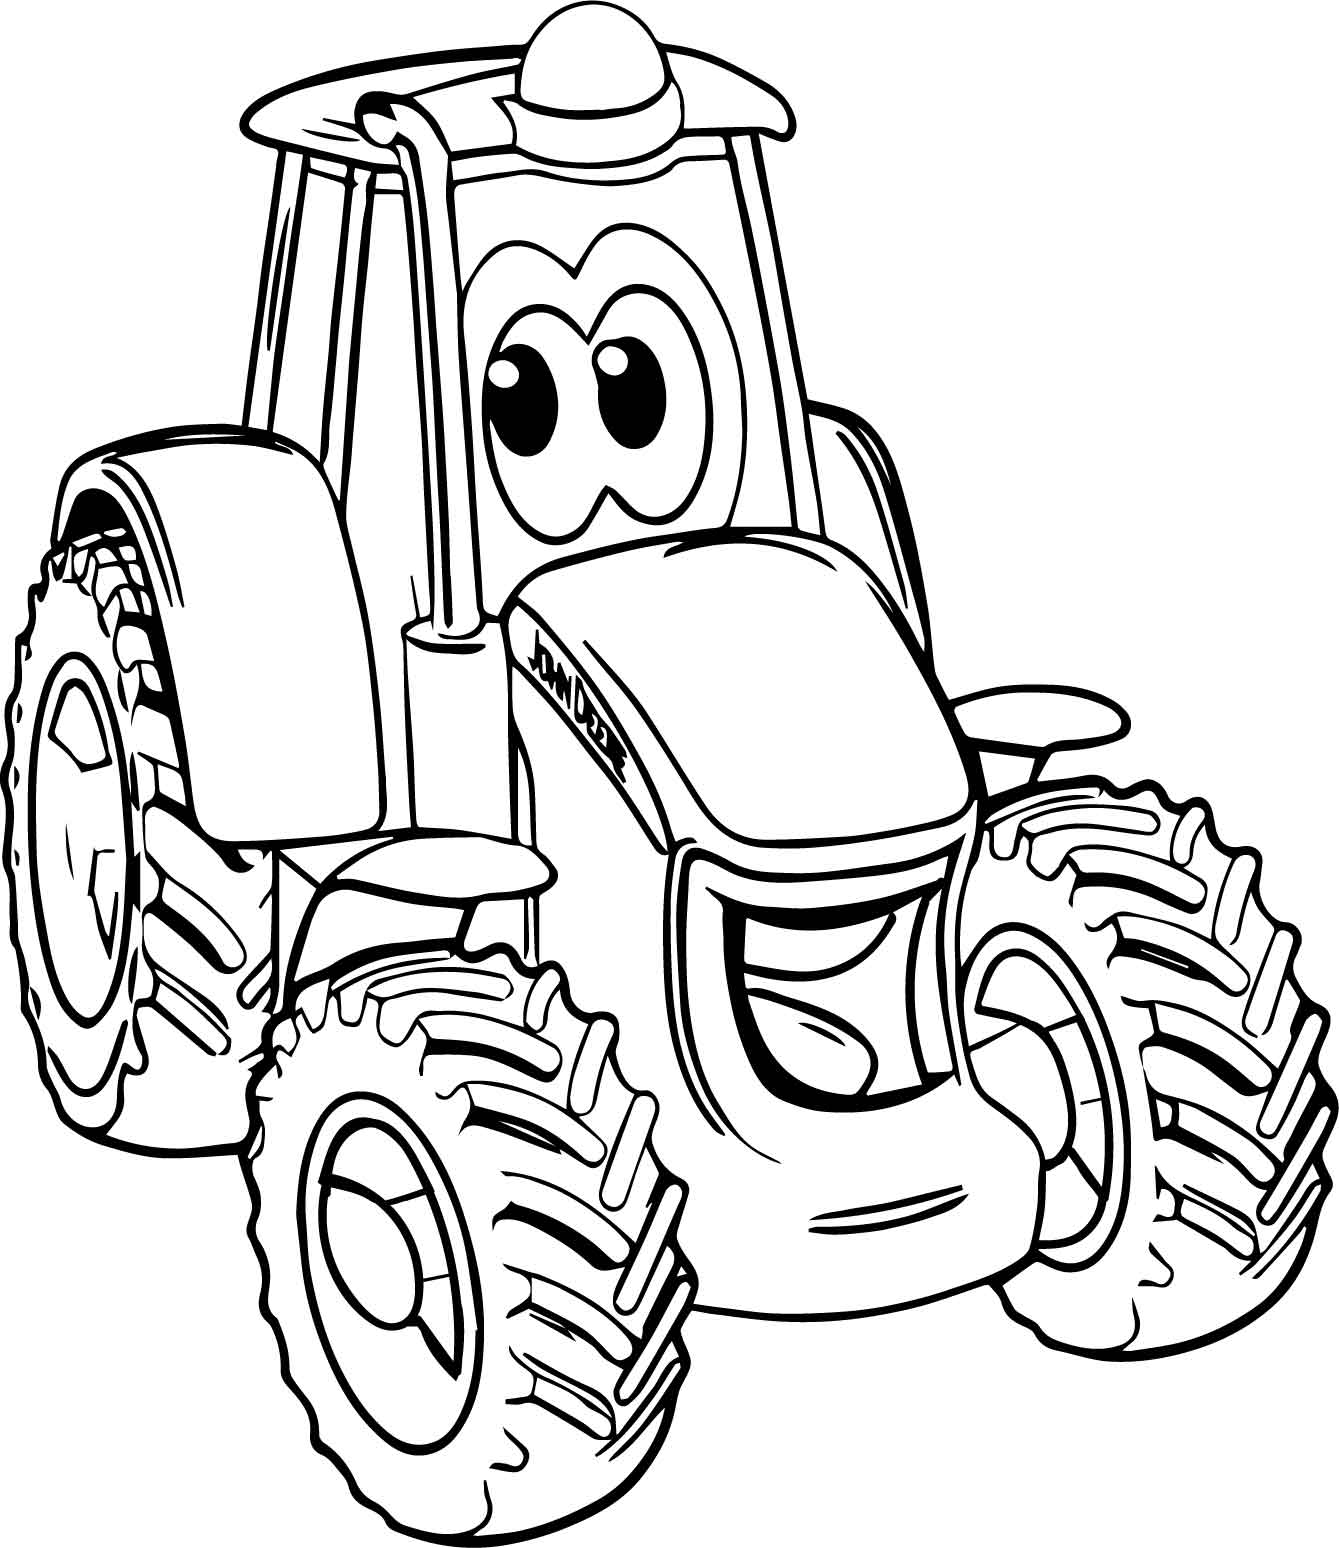 john deere coloring pages - smile john deere tractor coloring page